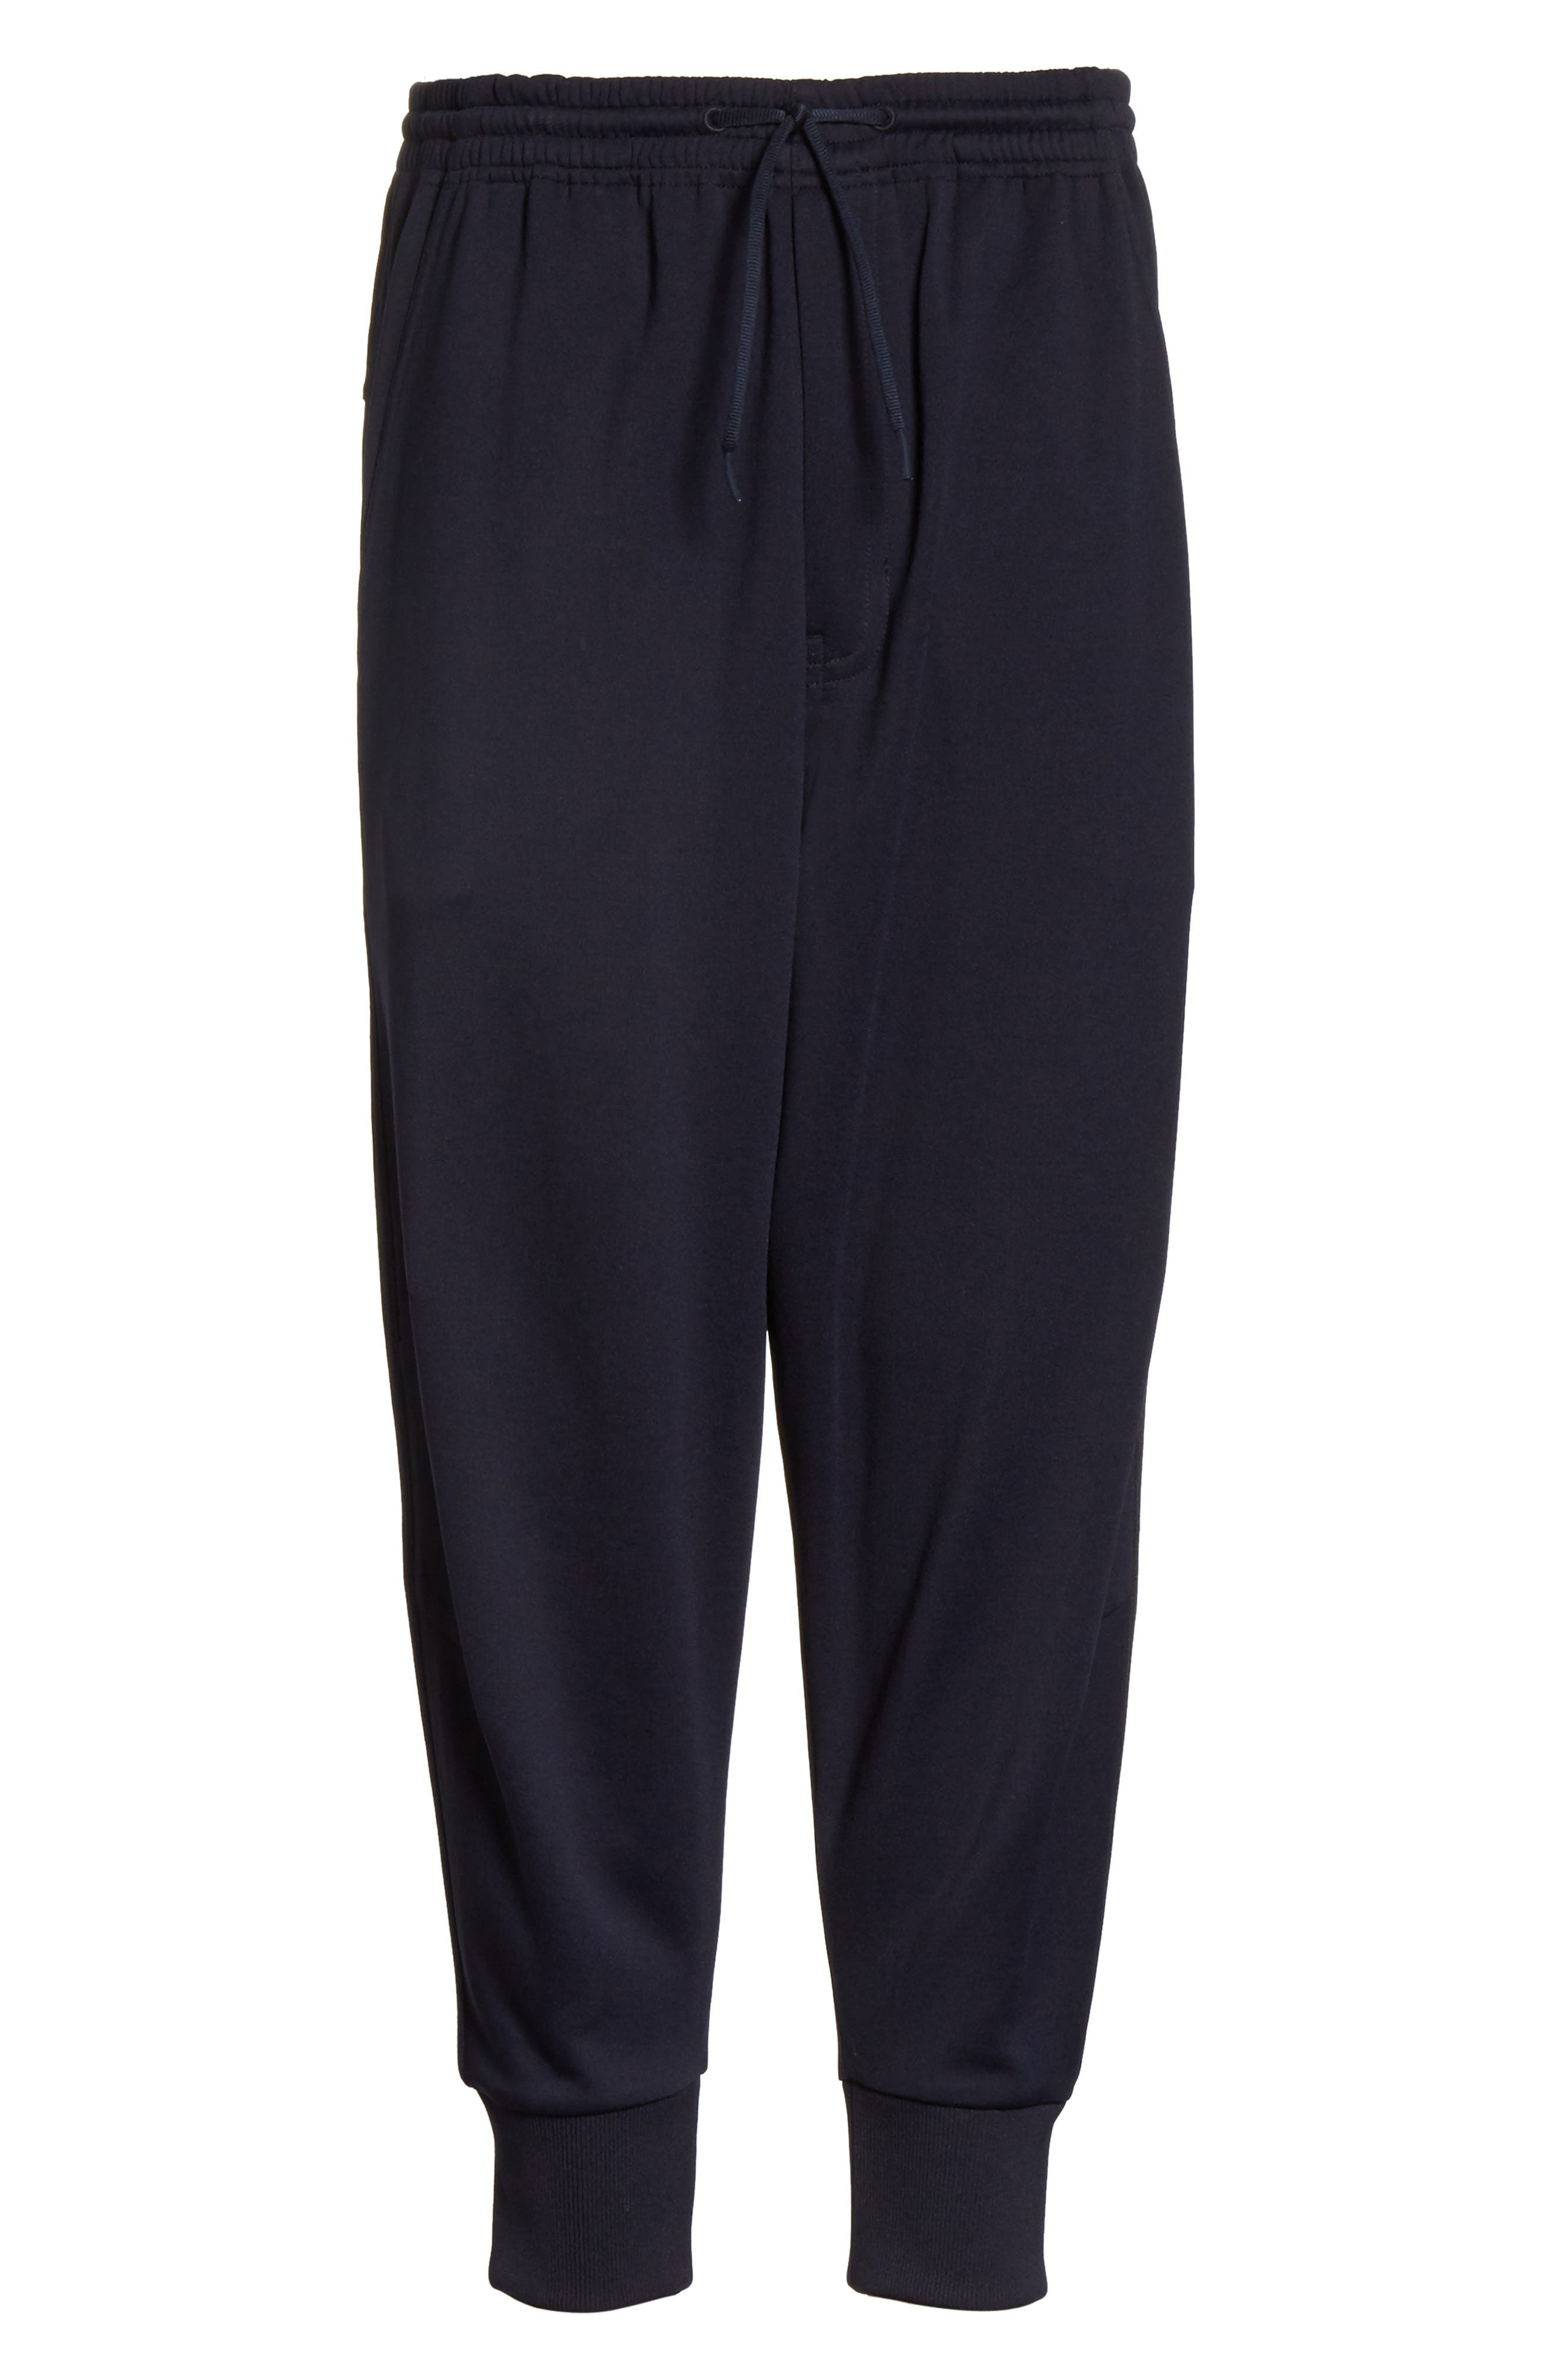 x adidas Cropped Track Pants,                             Alternate thumbnail 6, color,